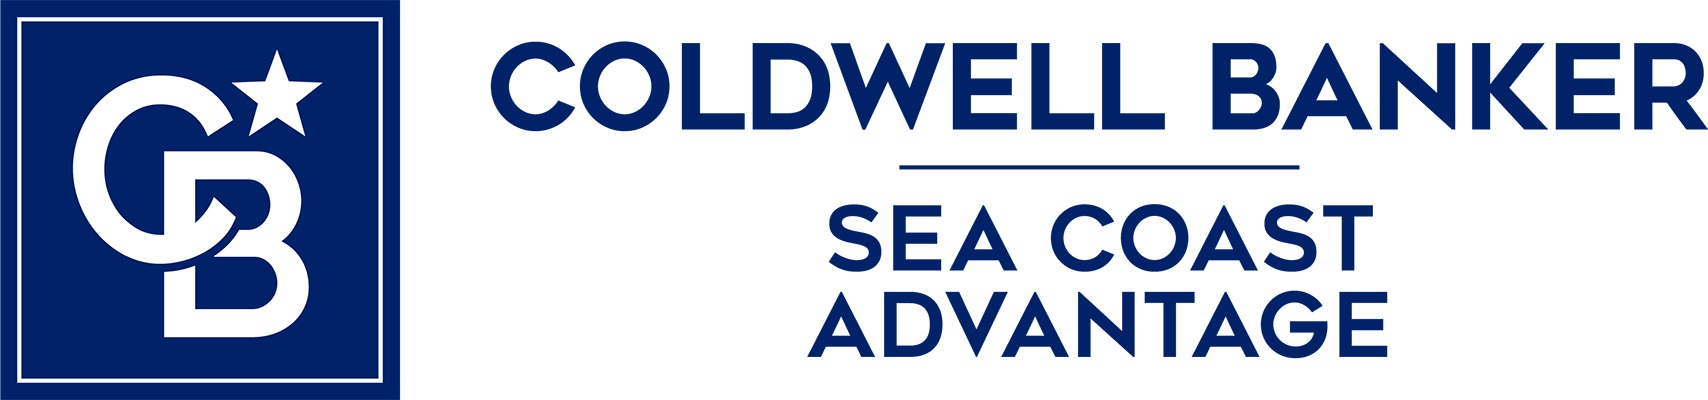 Denise Gueterman - Coldwell Banker Sea Coast Advantage Realty Logo